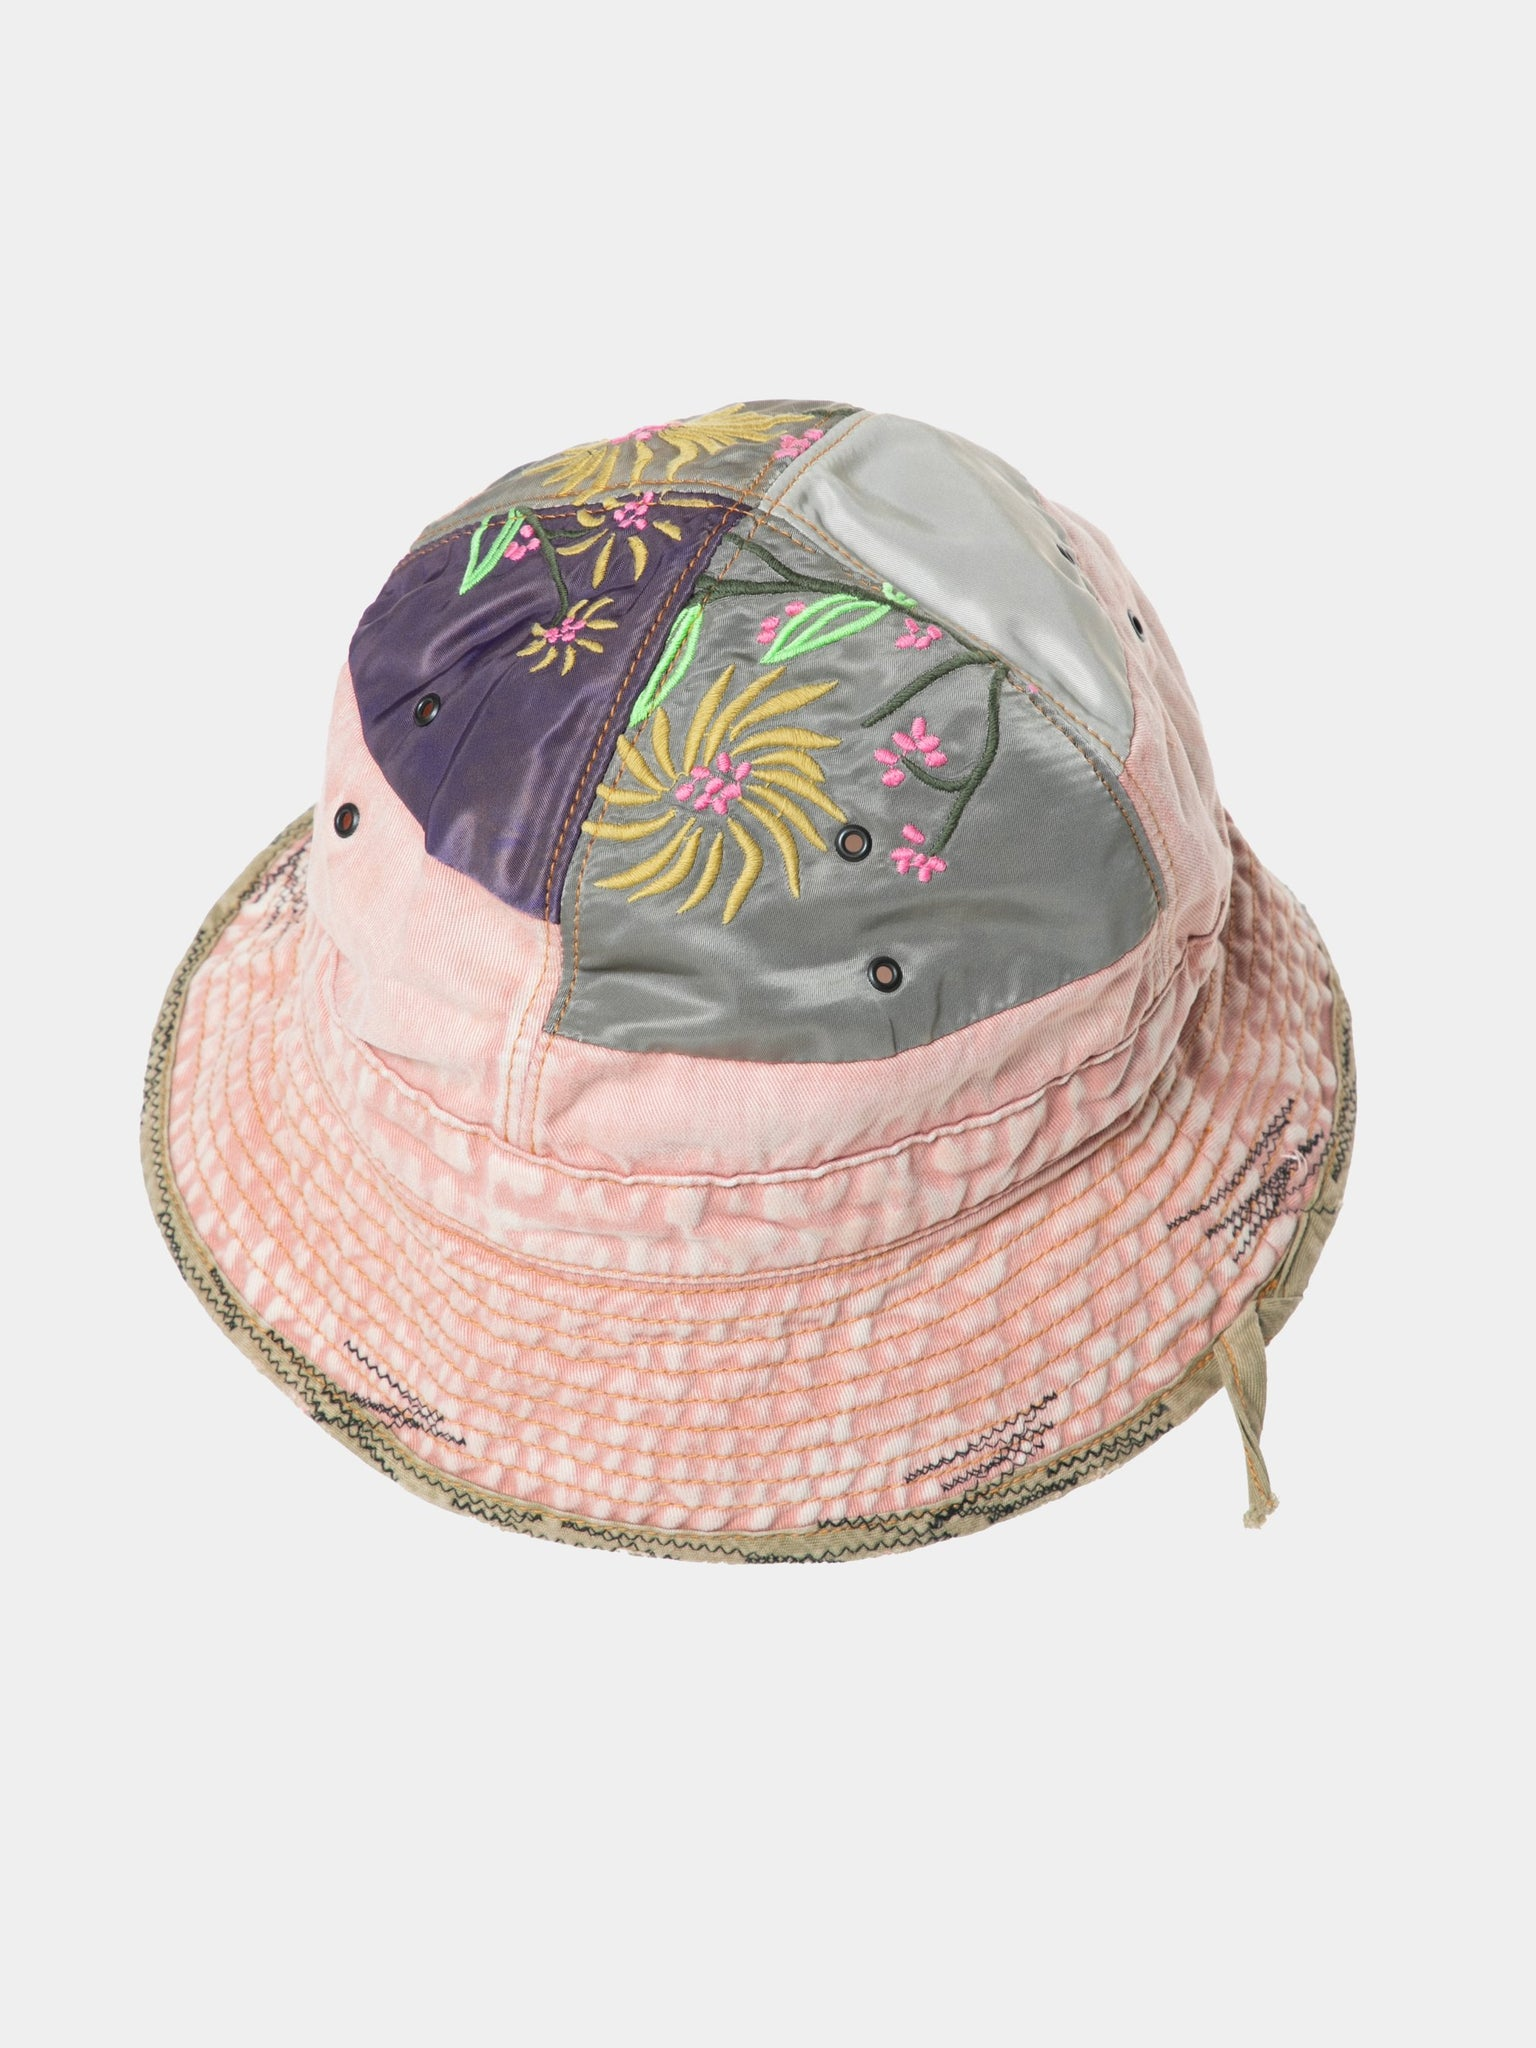 chino-bucket-hat-gypsy-patch-remake